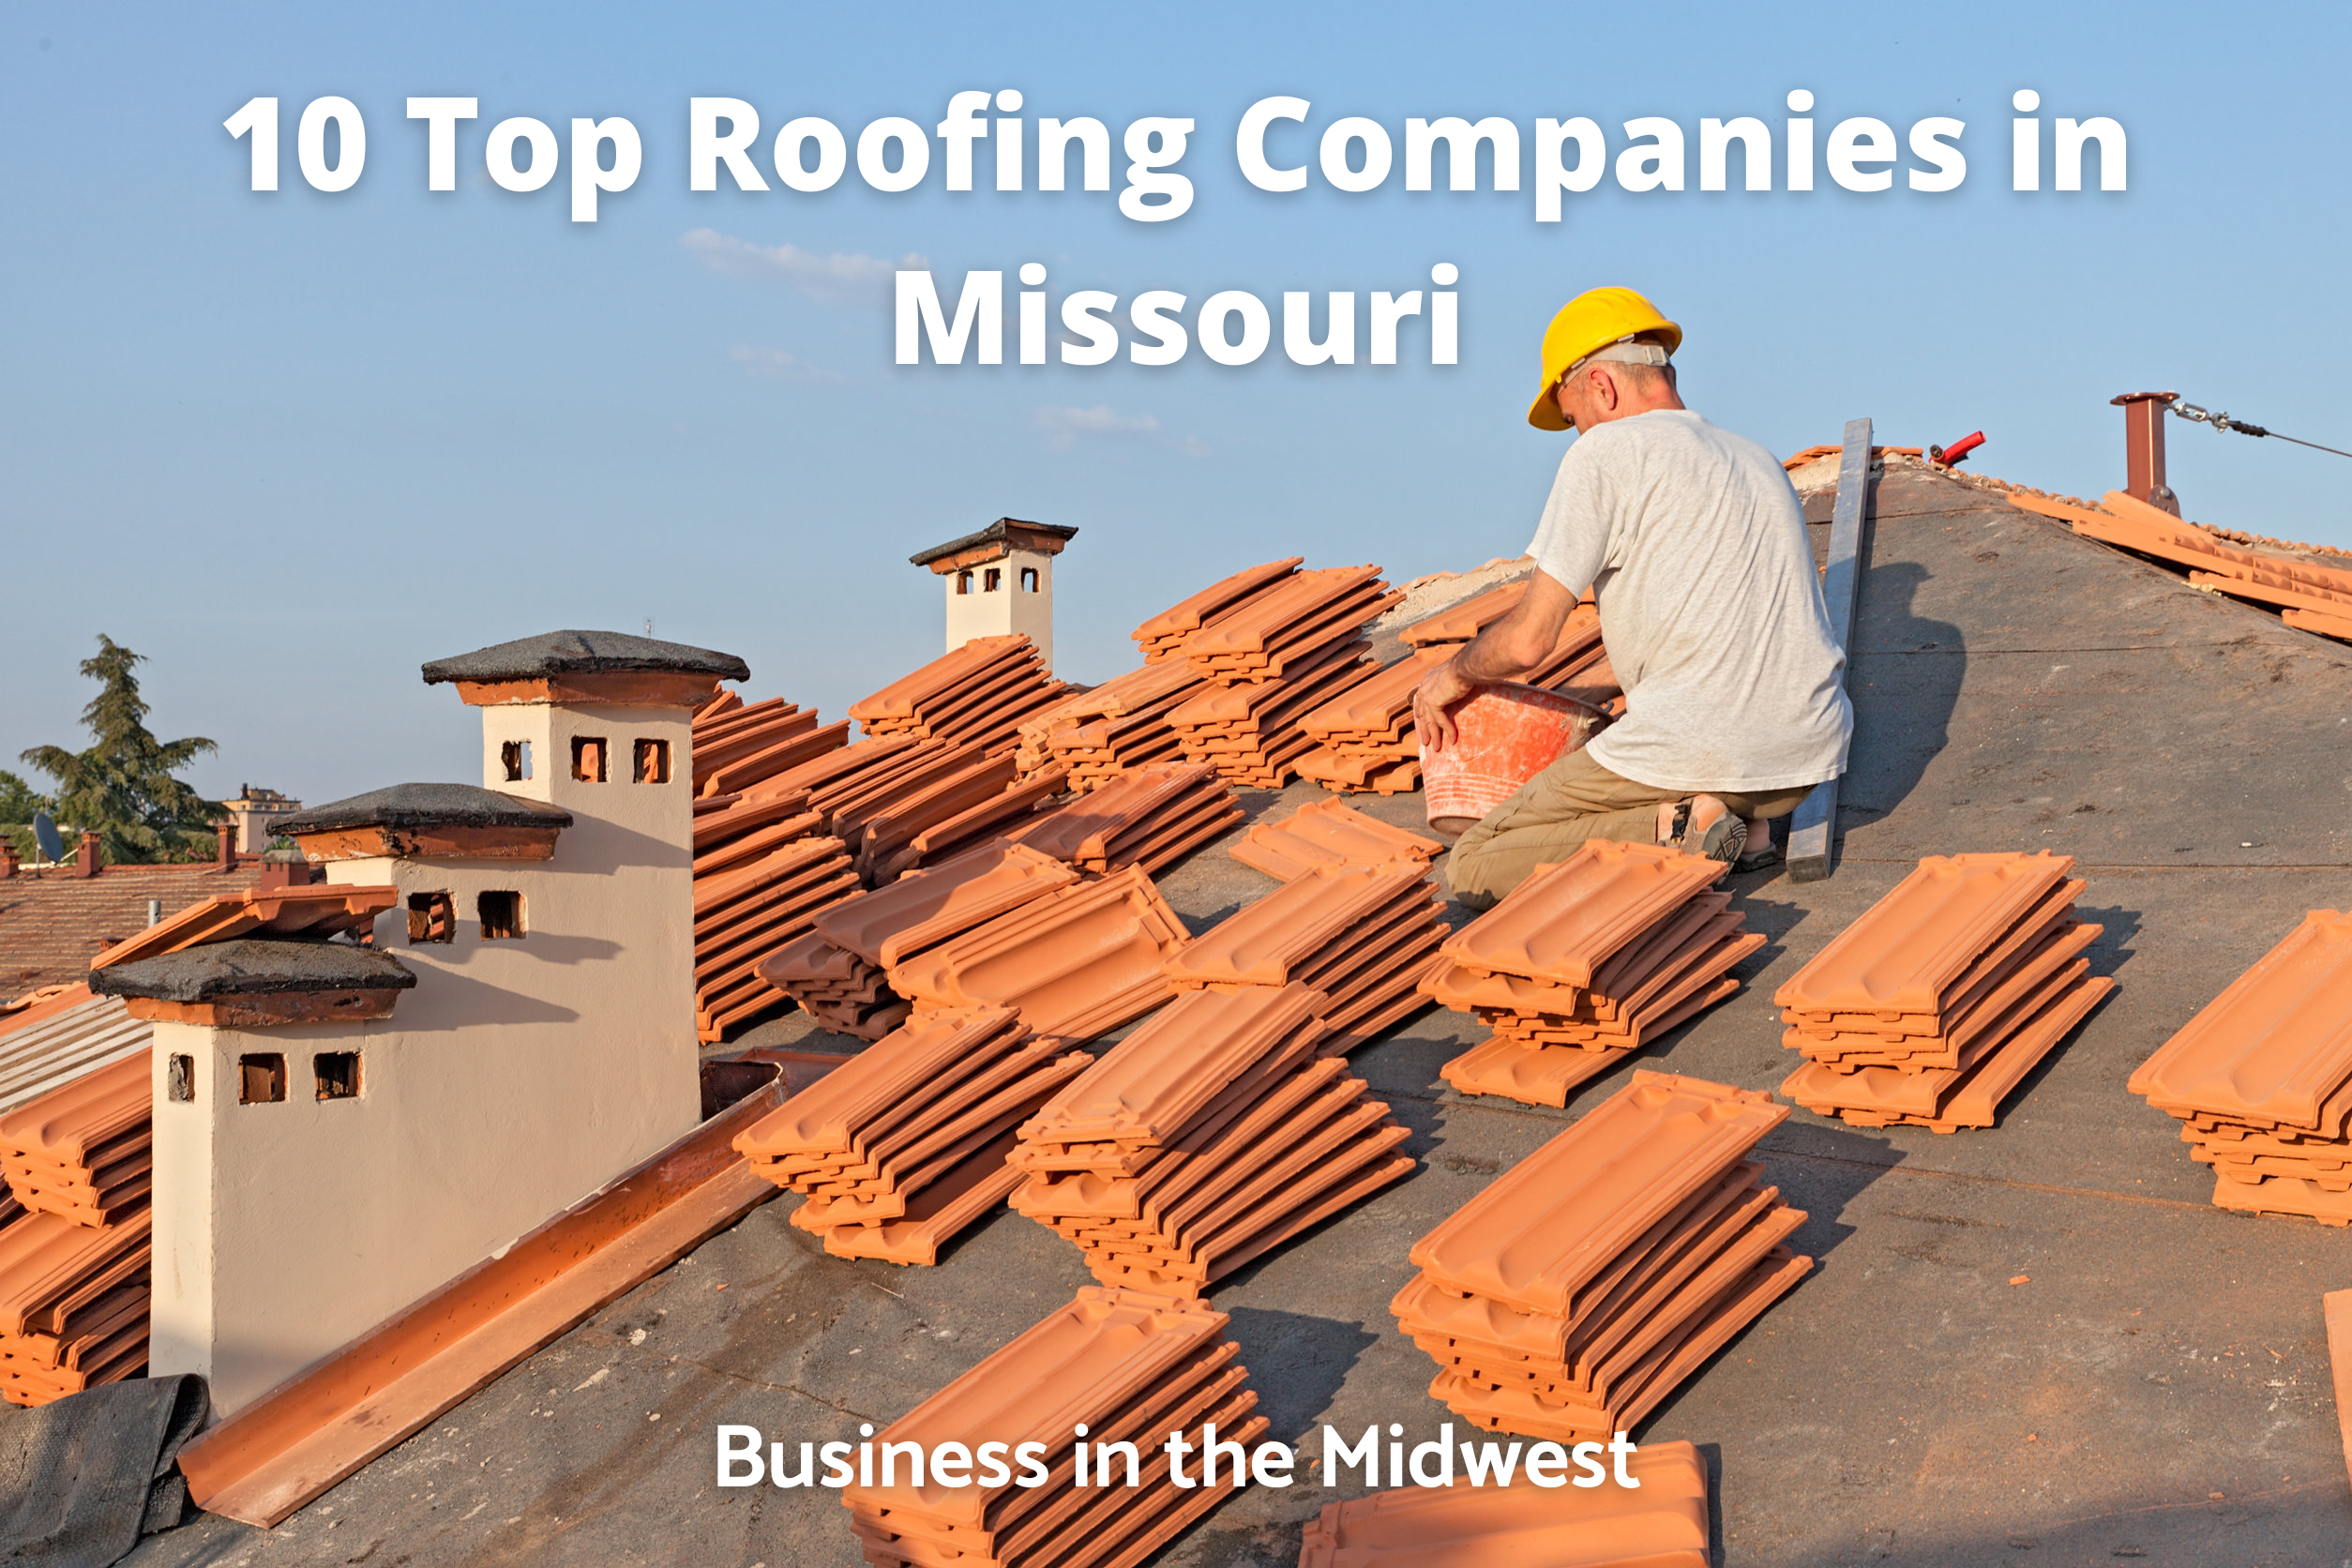 roofing companies in Missouri